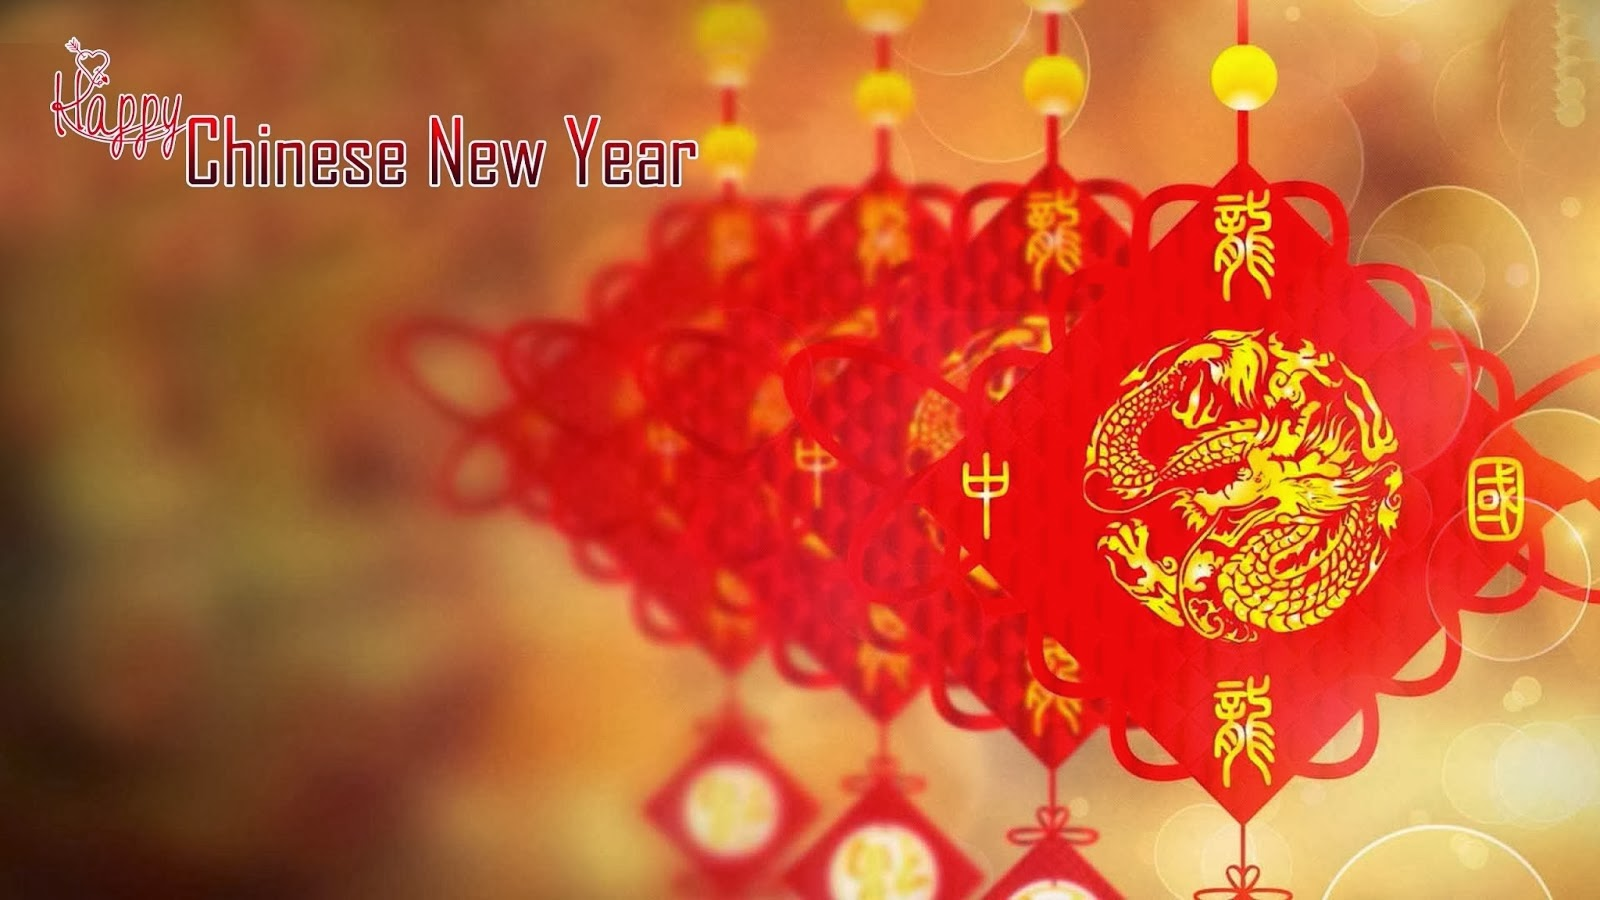 Happy chinese new year wishes cards lunar new year quotes and happy chinese new year wishes cards lunar new year quotes and messages m4hsunfo